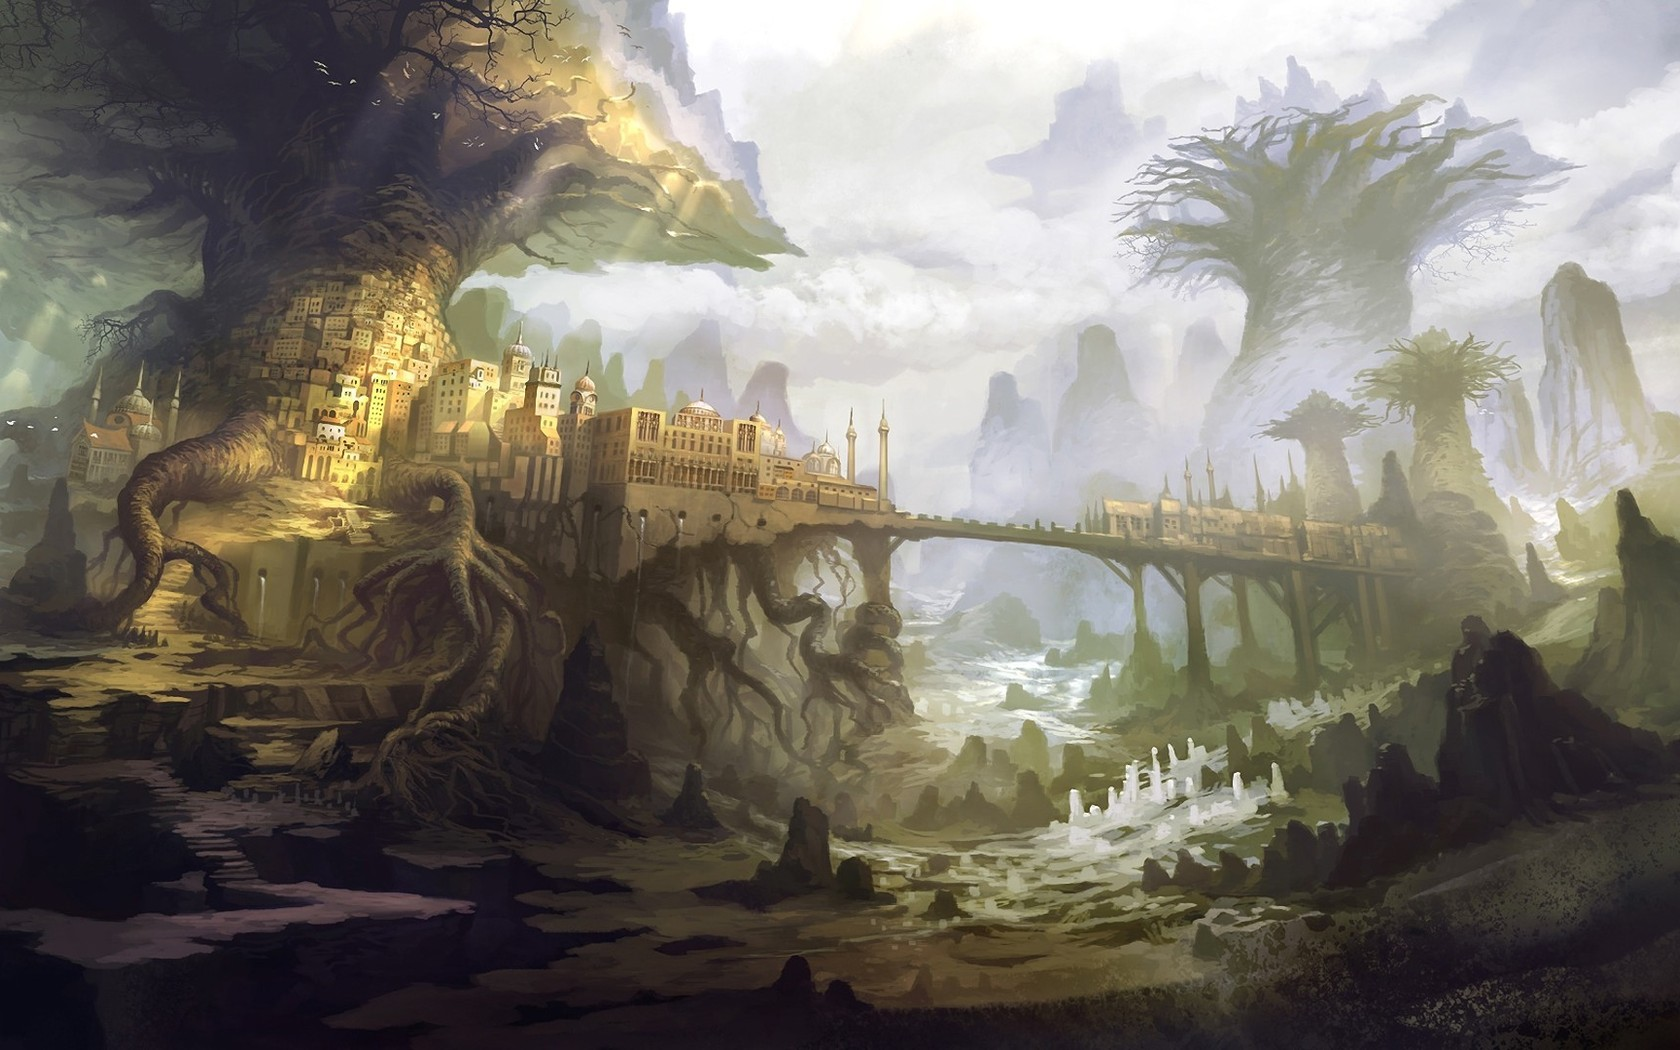 Art city trees giant fantasy world the roots hd wallpaper 421481